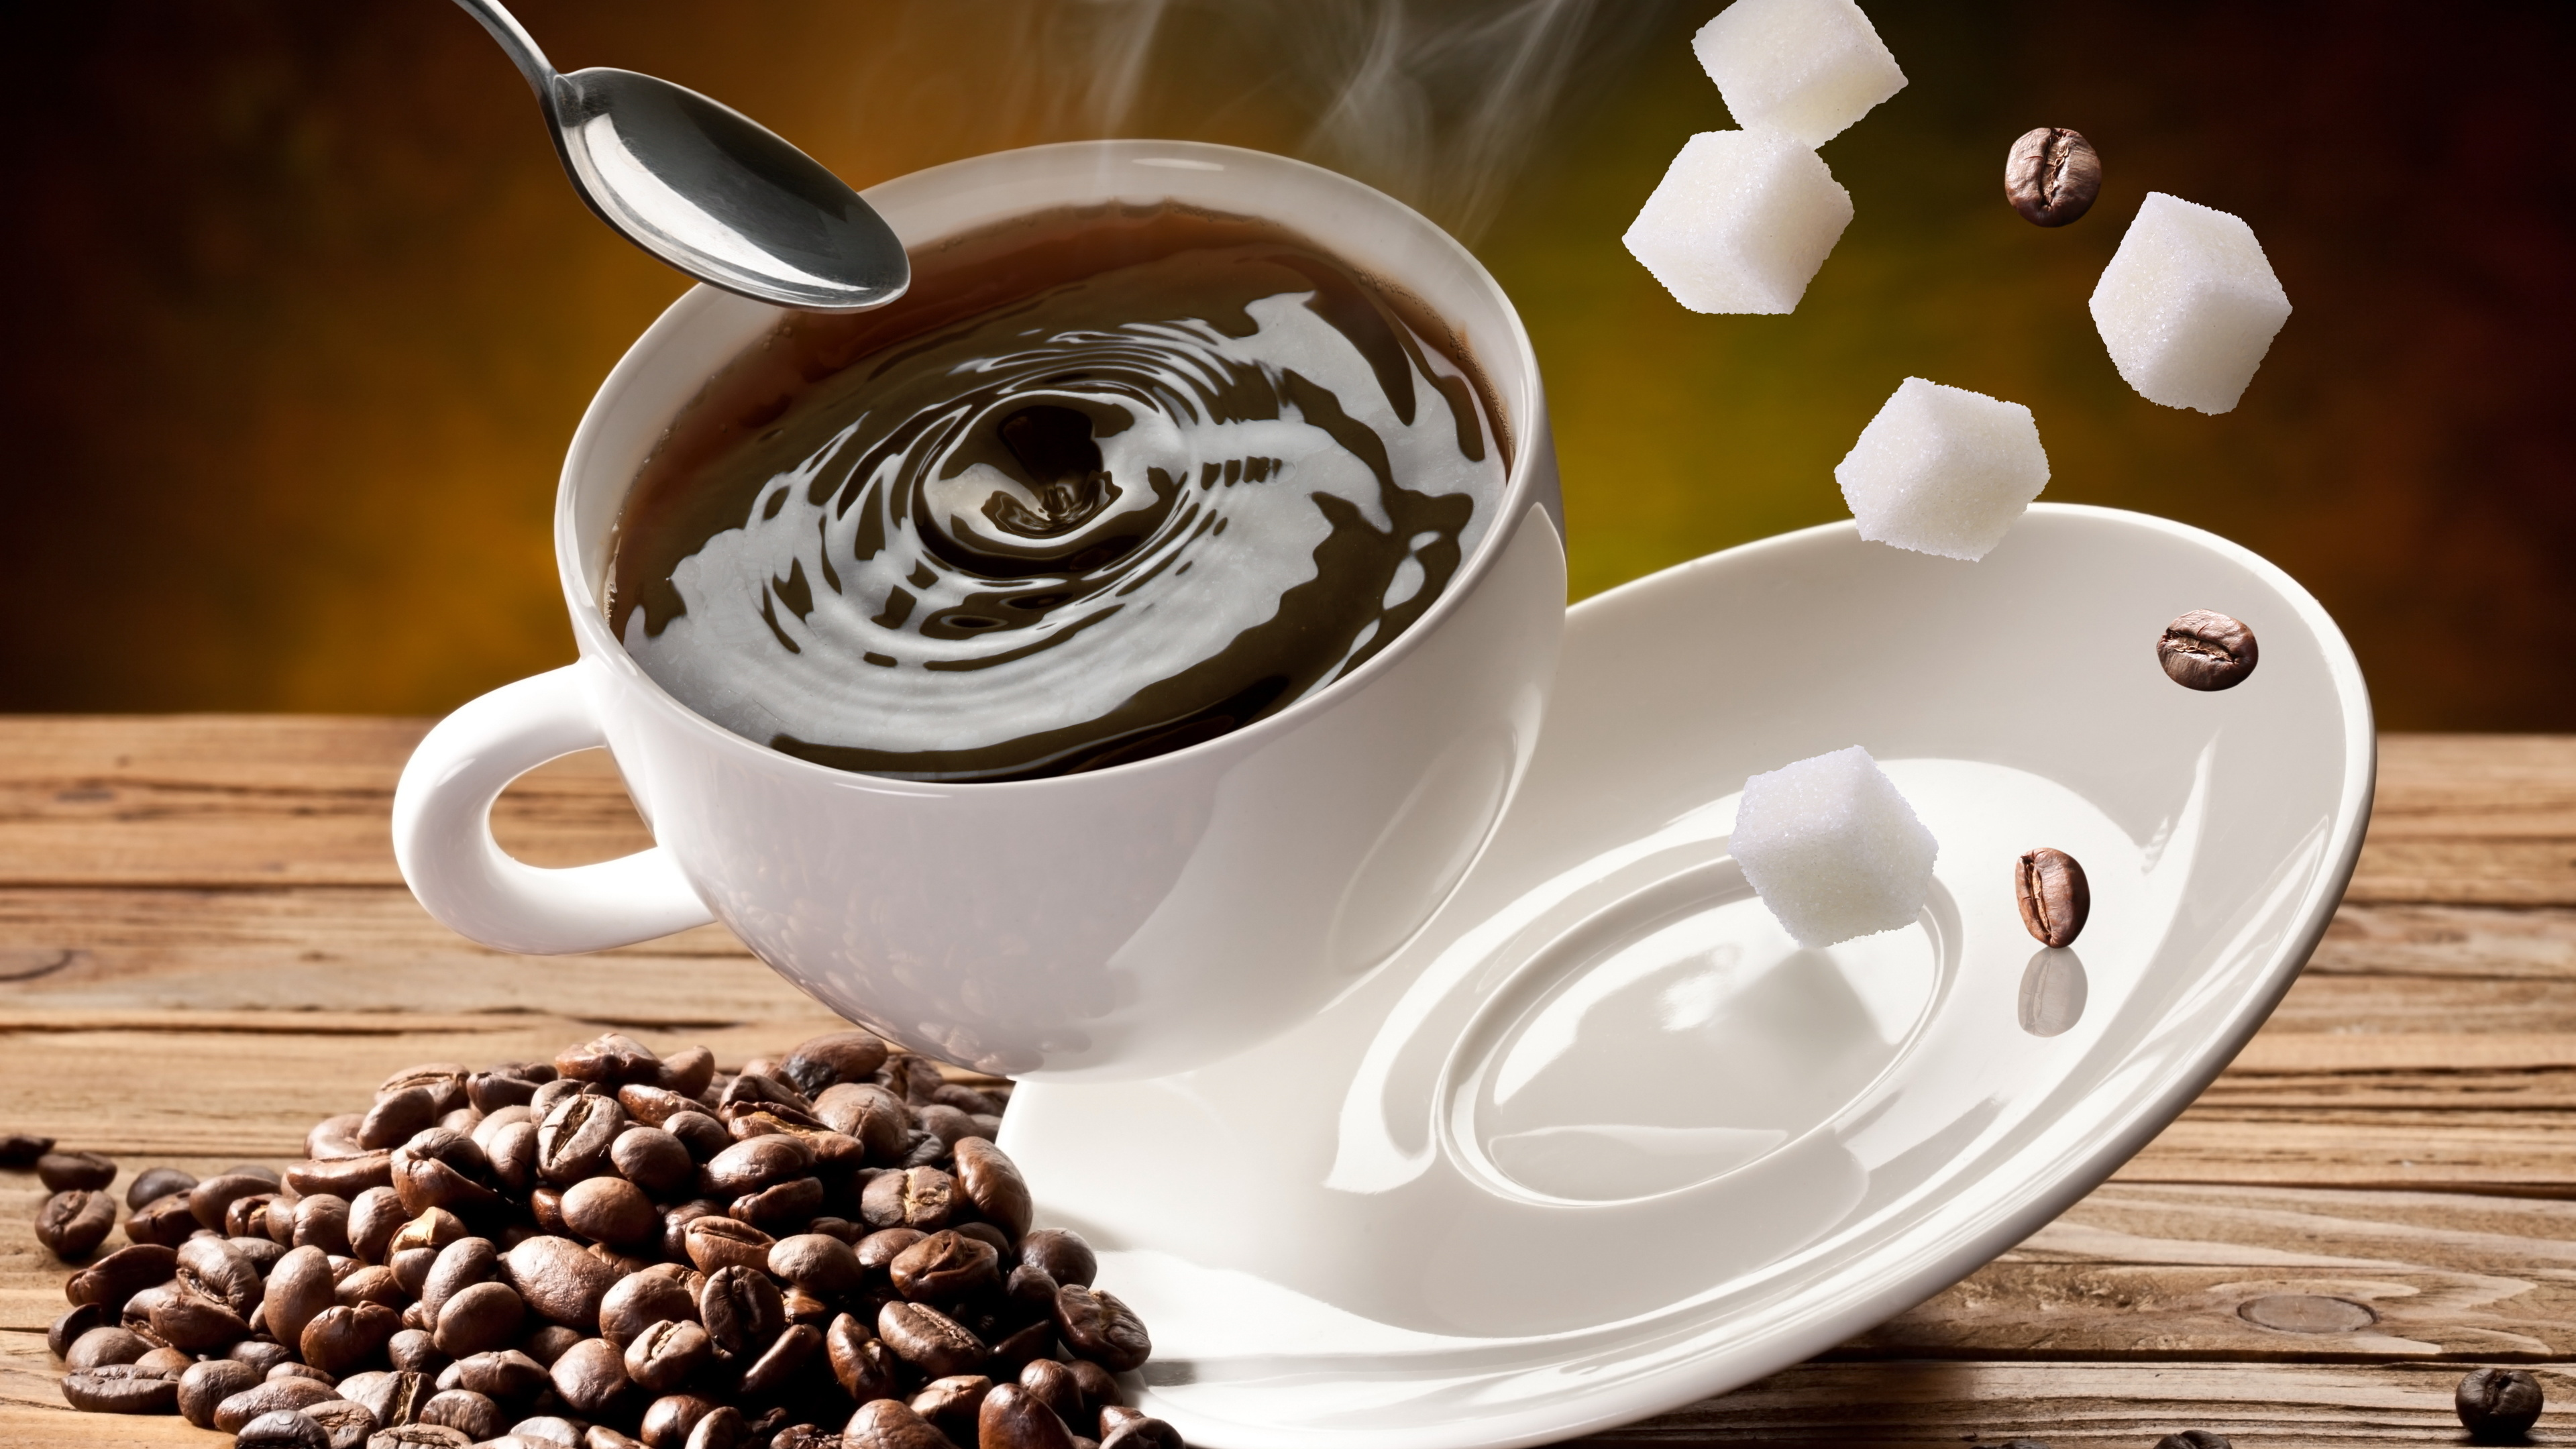 Pictures Of Coffee